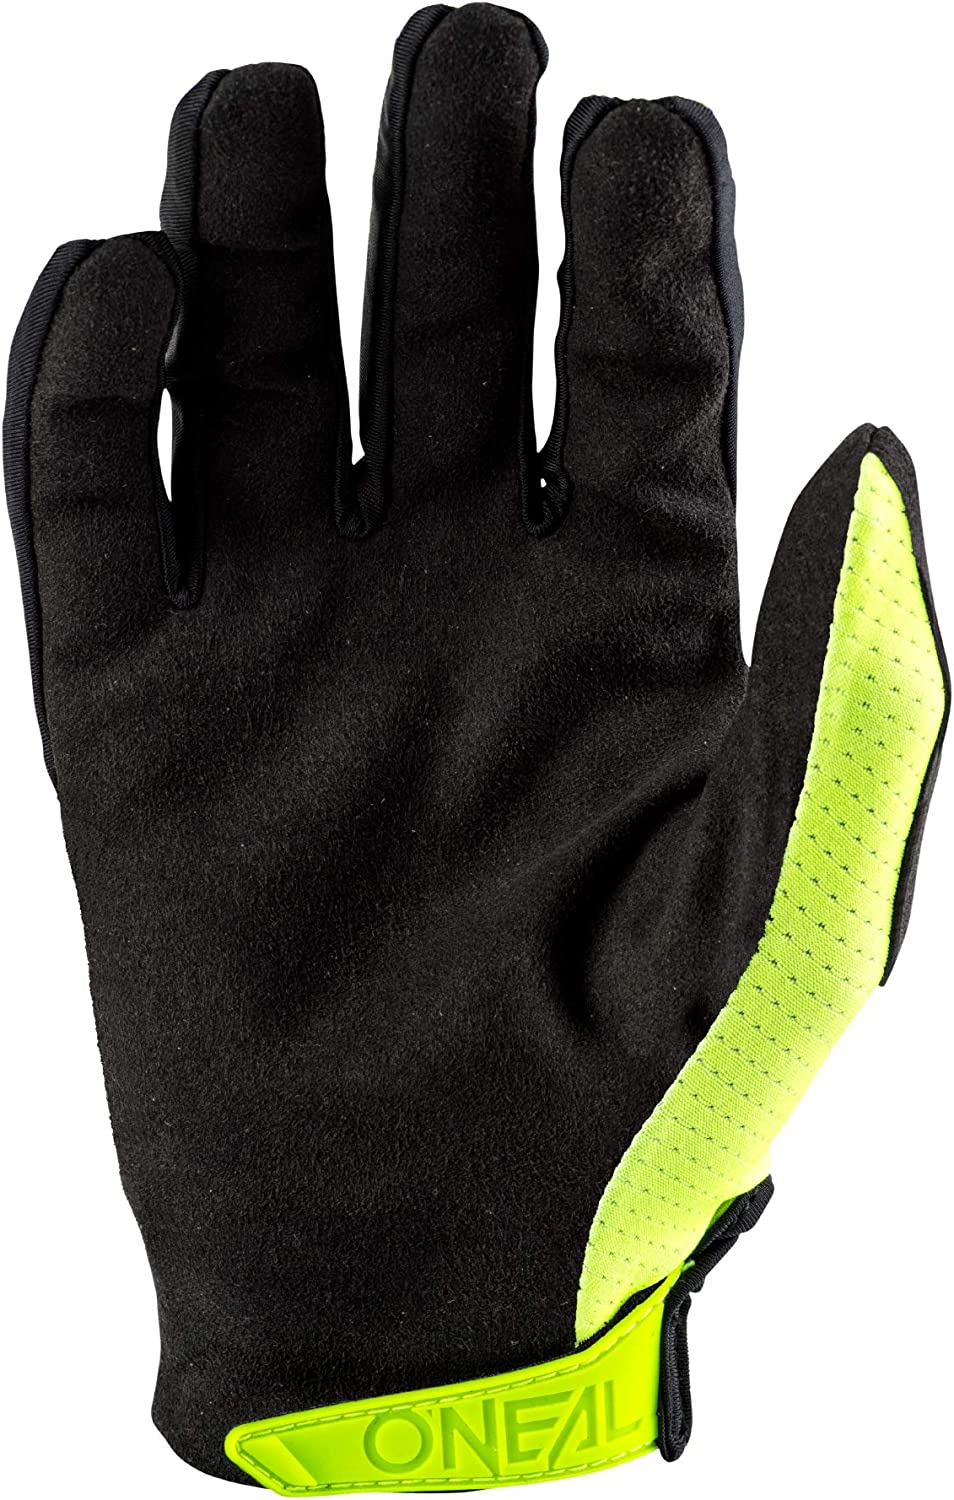 Oneal Matrix 2020 Stacked Motocross Gloves L Neon Yellow 0391-330